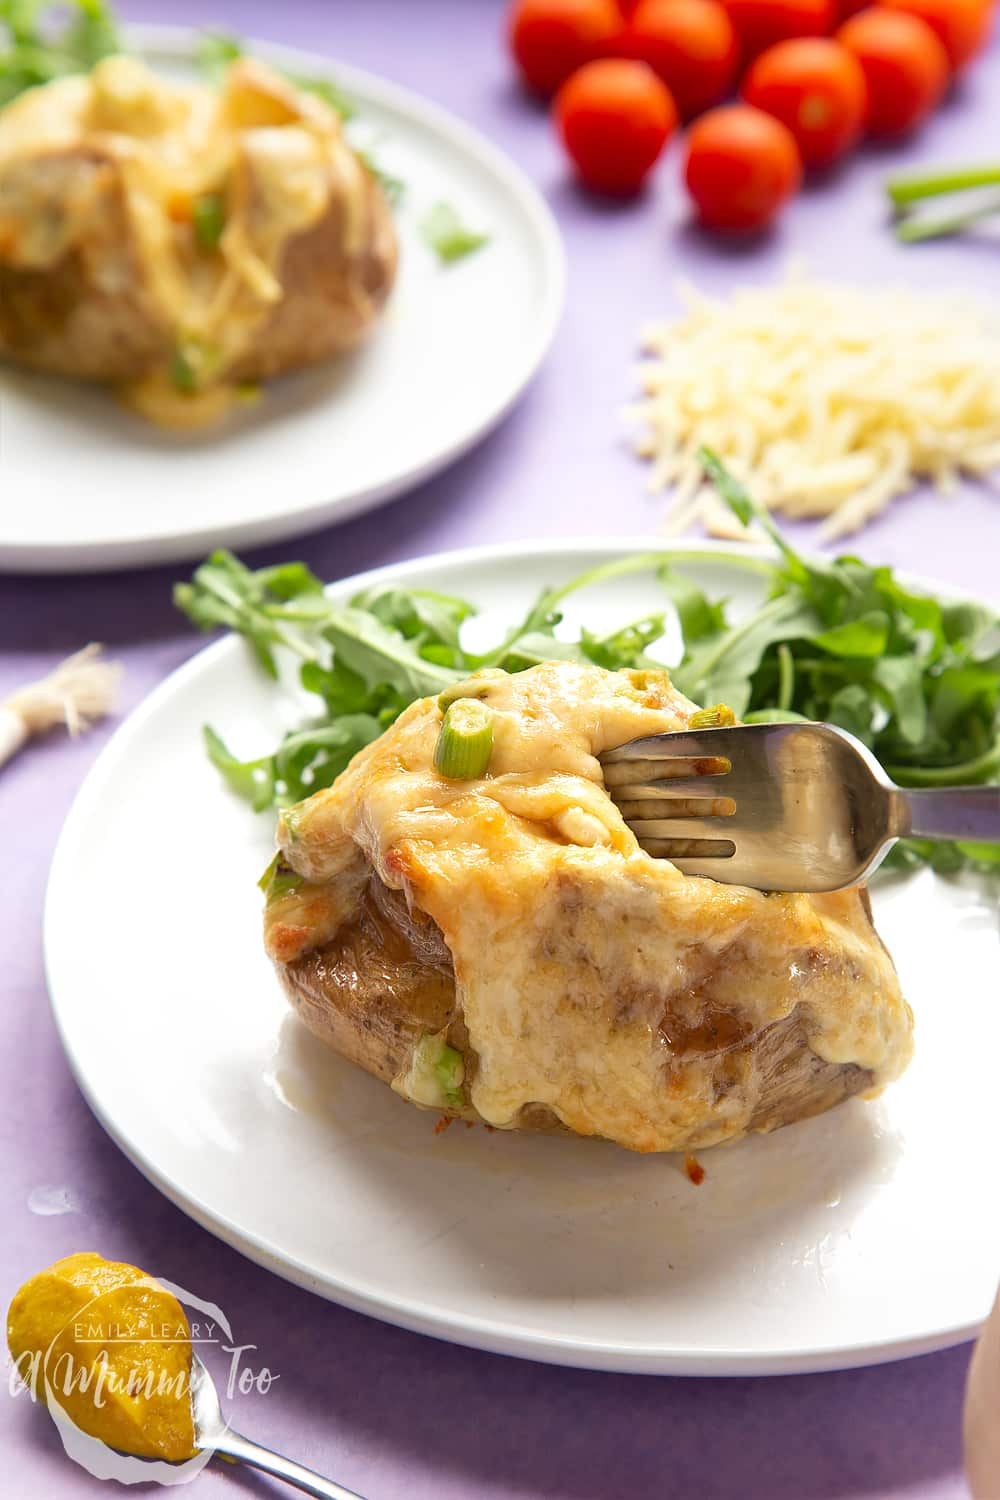 A cheese and onion jacket potato served on a white plate with rocket. A fork digs into the potato.